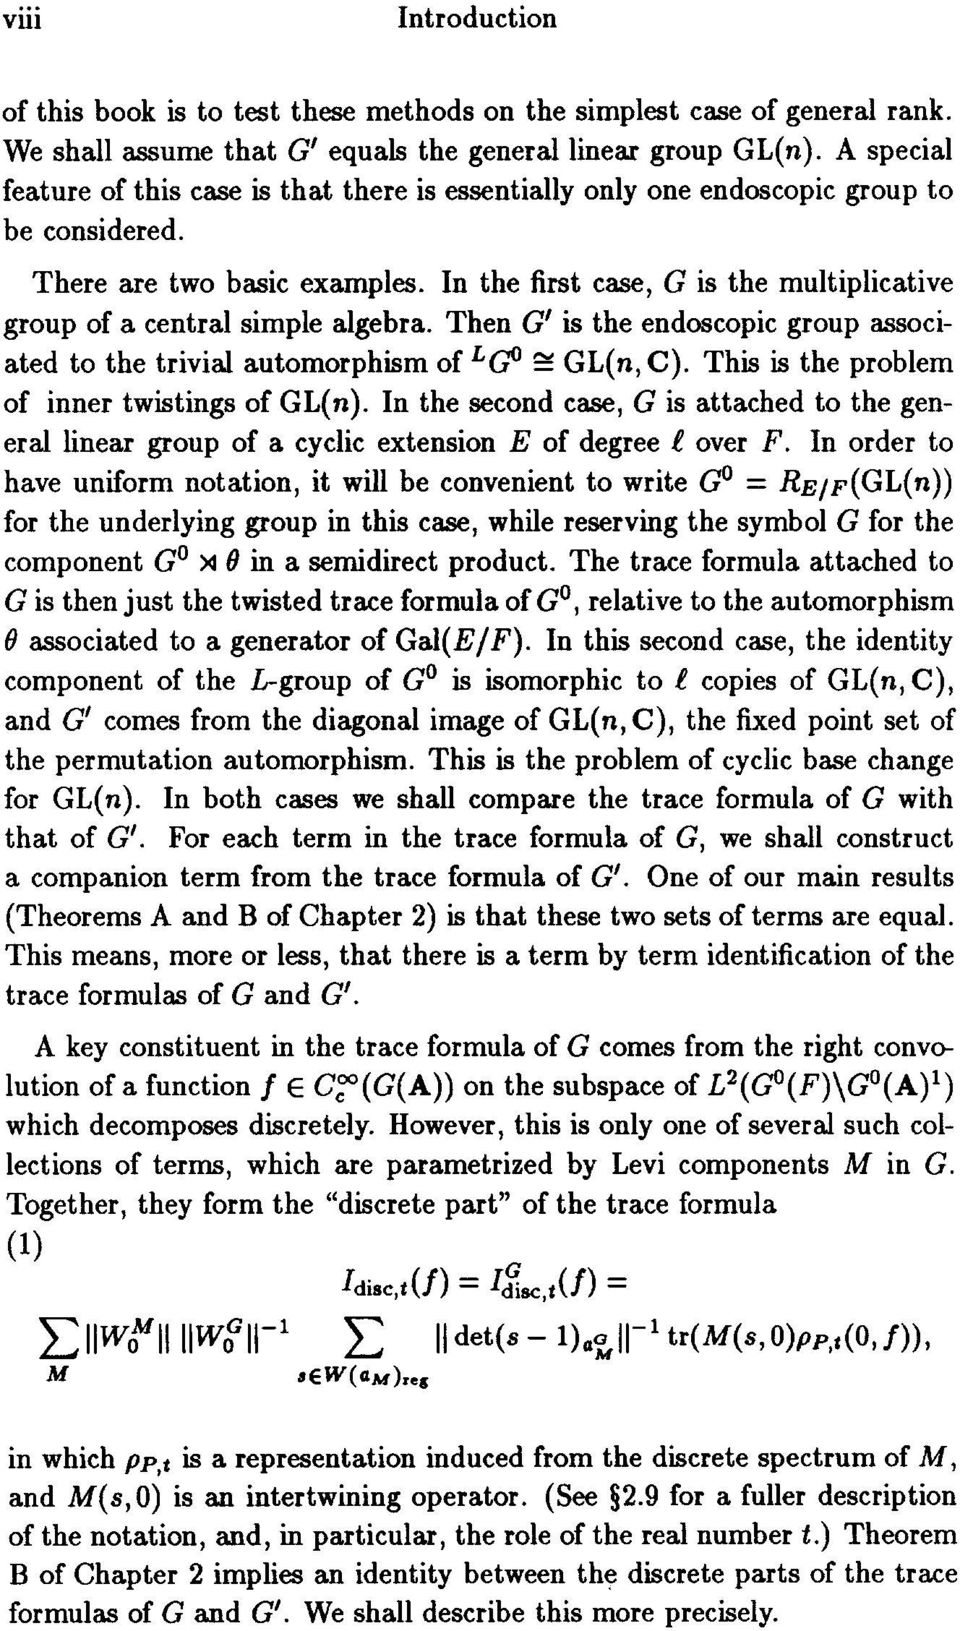 In the first case, G is the multiplicative group of a central simple algebra. Then G' is the endoscopic group associated to the trivial automorphism of LGO GL(n, C).